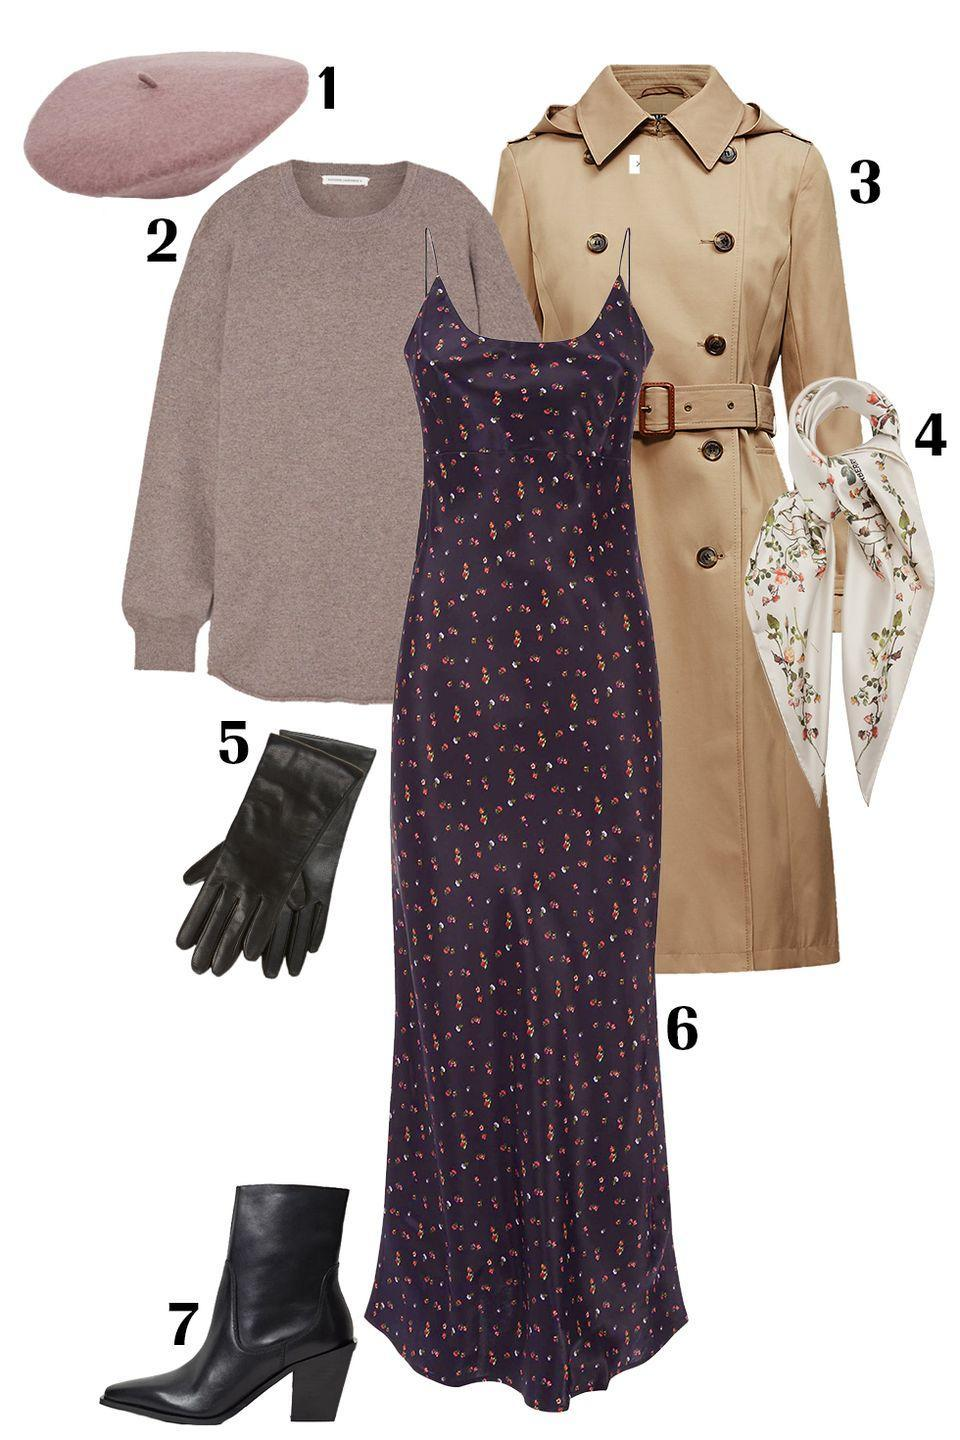 """<p>Layer a slinky <a href=""""https://www.marieclaire.com/fashion/g32225268/best-slip-dresses/"""" rel=""""nofollow noopener"""" target=""""_blank"""" data-ylk=""""slk:slip dress"""" class=""""link rapid-noclick-resp"""">slip dress</a> under a cashmere sweater with black boots and a <a href=""""https://www.marieclaire.com/fashion/news/g4526/best-trench-coats/"""" rel=""""nofollow noopener"""" target=""""_blank"""" data-ylk=""""slk:classic trench"""" class=""""link rapid-noclick-resp"""">classic trench</a>. Instead of adding jewelry to this look, opt for a silk scarf tied around your neck, and in lieu of a knit beanie choose a muted pink beret. These small substitutions will elevate your outfit to that effortlessly chic French-girl aesthetic we all love. </p><p>Shop the pieces:<em> <strong>1.</strong> </em><em><a href=""""https://www.asos.com/us/asos-design/asos-design-wool-beret-in-mauve/prd/20357604?"""" rel=""""nofollow noopener"""" target=""""_blank"""" data-ylk=""""slk:ASOS Design Beret"""" class=""""link rapid-noclick-resp"""">ASOS Design Beret</a></em><em>,</em> $16; <strong>2.</strong> <em><a href=""""https://www.net-a-porter.com/en-us/shop/product/extreme-cashmere/n53-crew-hop-cashmere-blend-sweater/1322682"""" rel=""""nofollow noopener"""" target=""""_blank"""" data-ylk=""""slk:Extreme Cashmere Sweater"""" class=""""link rapid-noclick-resp"""">Extreme Cashmere Sweater</a></em>, $520; <strong>3.</strong> <em><a href=""""https://www.ralphlauren.com/women-clothing-coats/cotton-blend-trench-coat/552436.html"""" rel=""""nofollow noopener"""" target=""""_blank"""" data-ylk=""""slk:Lauren Ralph Lauren Trench Coat"""" class=""""link rapid-noclick-resp"""">Lauren Ralph Lauren Trench Coat</a></em>, $140; <strong>4.</strong> <em><a href=""""https://www.matchesfashion.com/us/products/Burberry-Floral-print-silk-twill-scarf-1385951"""" rel=""""nofollow noopener"""" target=""""_blank"""" data-ylk=""""slk:Burberry Silk Twill Scarf"""" class=""""link rapid-noclick-resp"""">Burberry Silk Twill Scarf</a></em>, $485; <strong>5.</strong> <em><a href=""""https://www.nordstrom.com/s/nordstrom-cashmere-lined-leather-touchscreen-gloves/5874865?origin=keywordsea"""